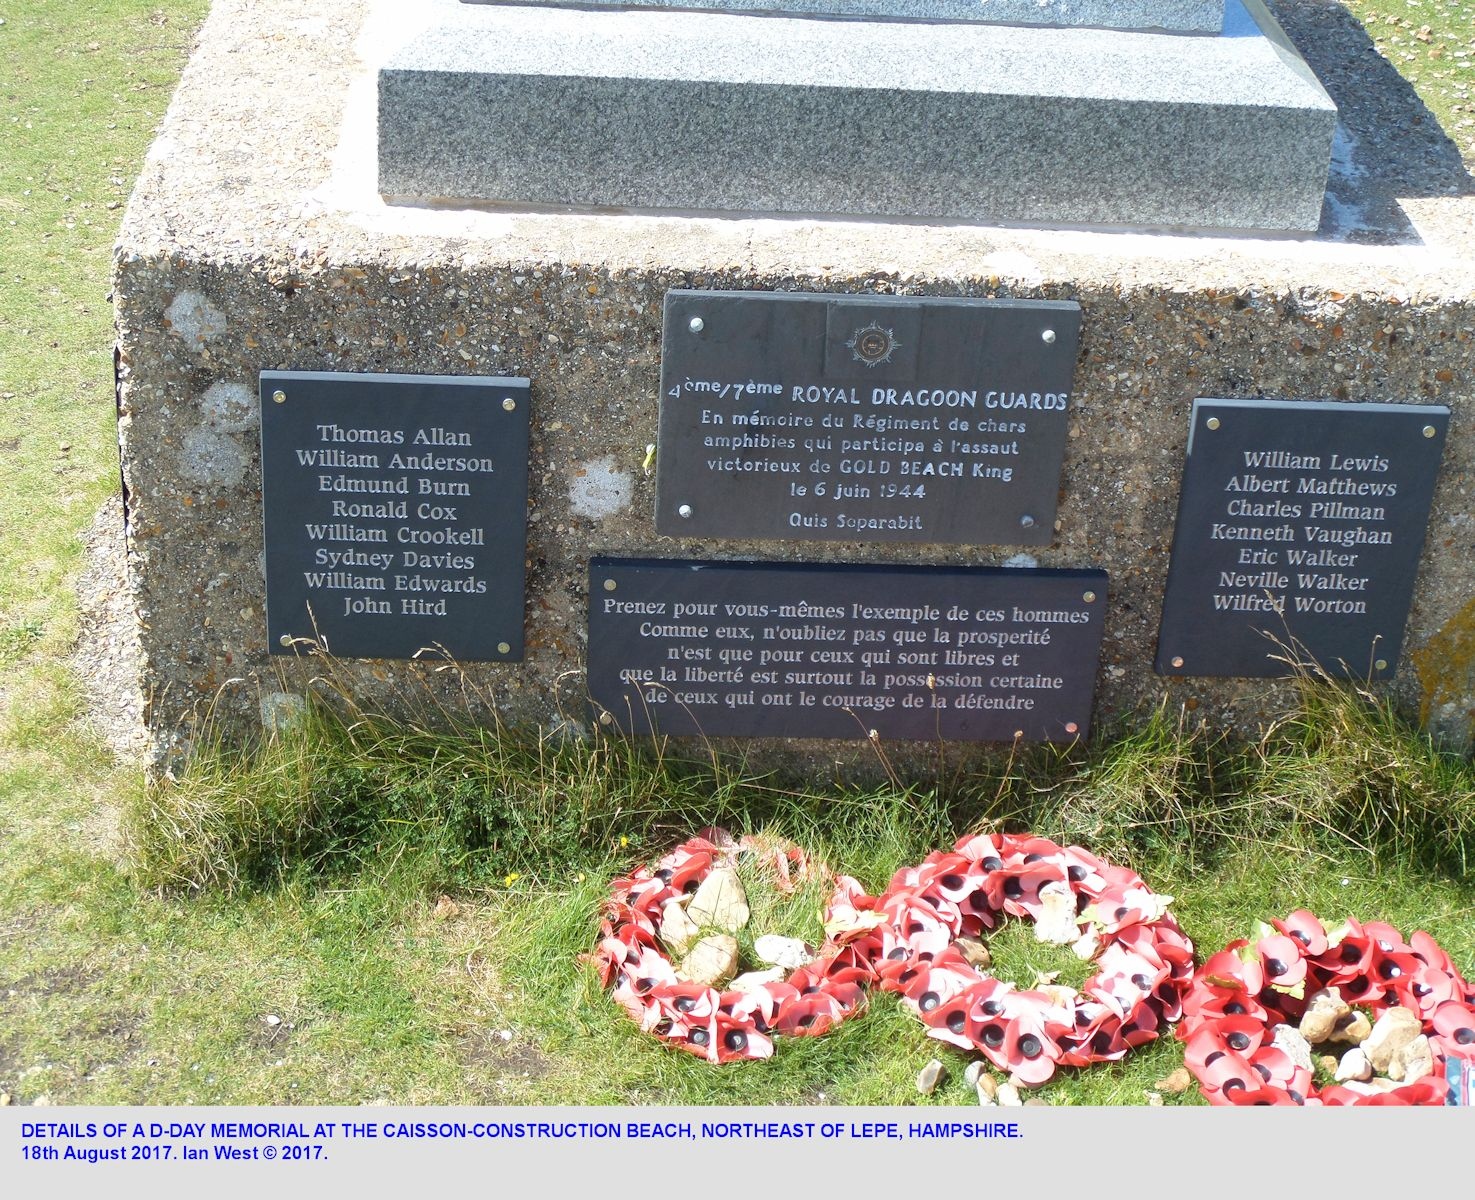 Details of the D-Day Monument on the caisson-construction beach, northeast of Stansore Point, near Lepe, Hampshire